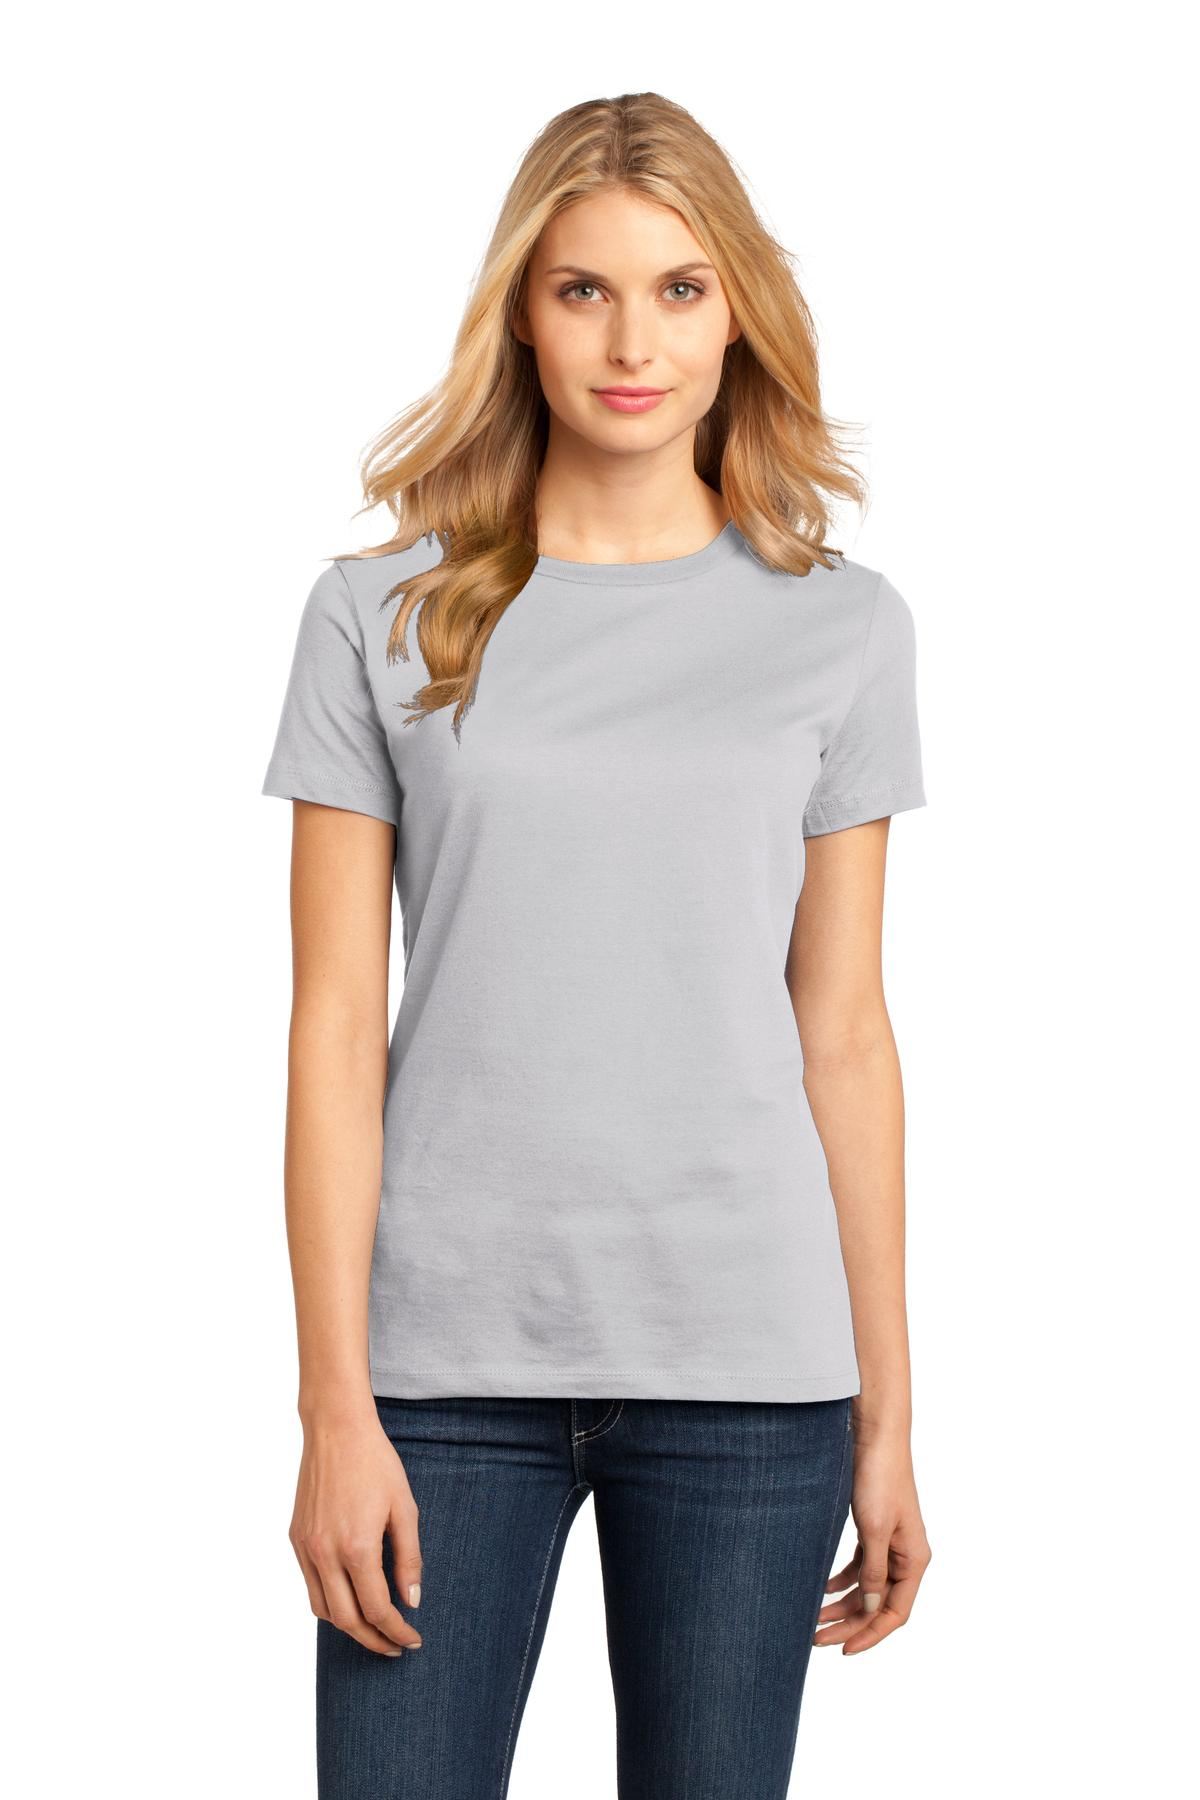 District ® Women's Perfect Weight ® Tee. DM104L, Traditional Colors-Ladies-wholesale apparel